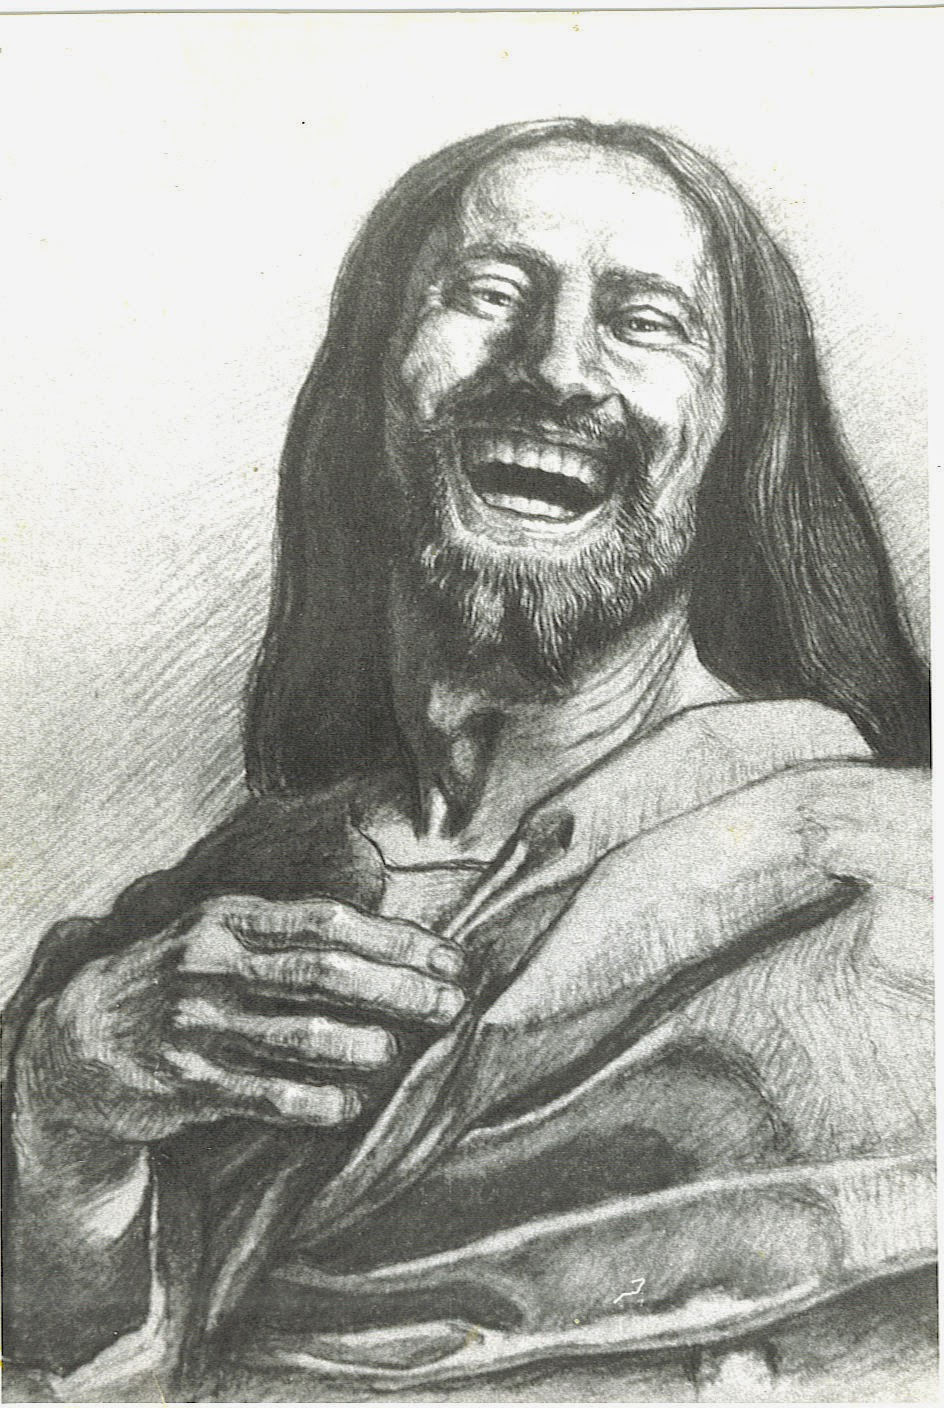 Images Of Jesus Laughing : images, jesus, laughing, Minister's, Musings:, Human